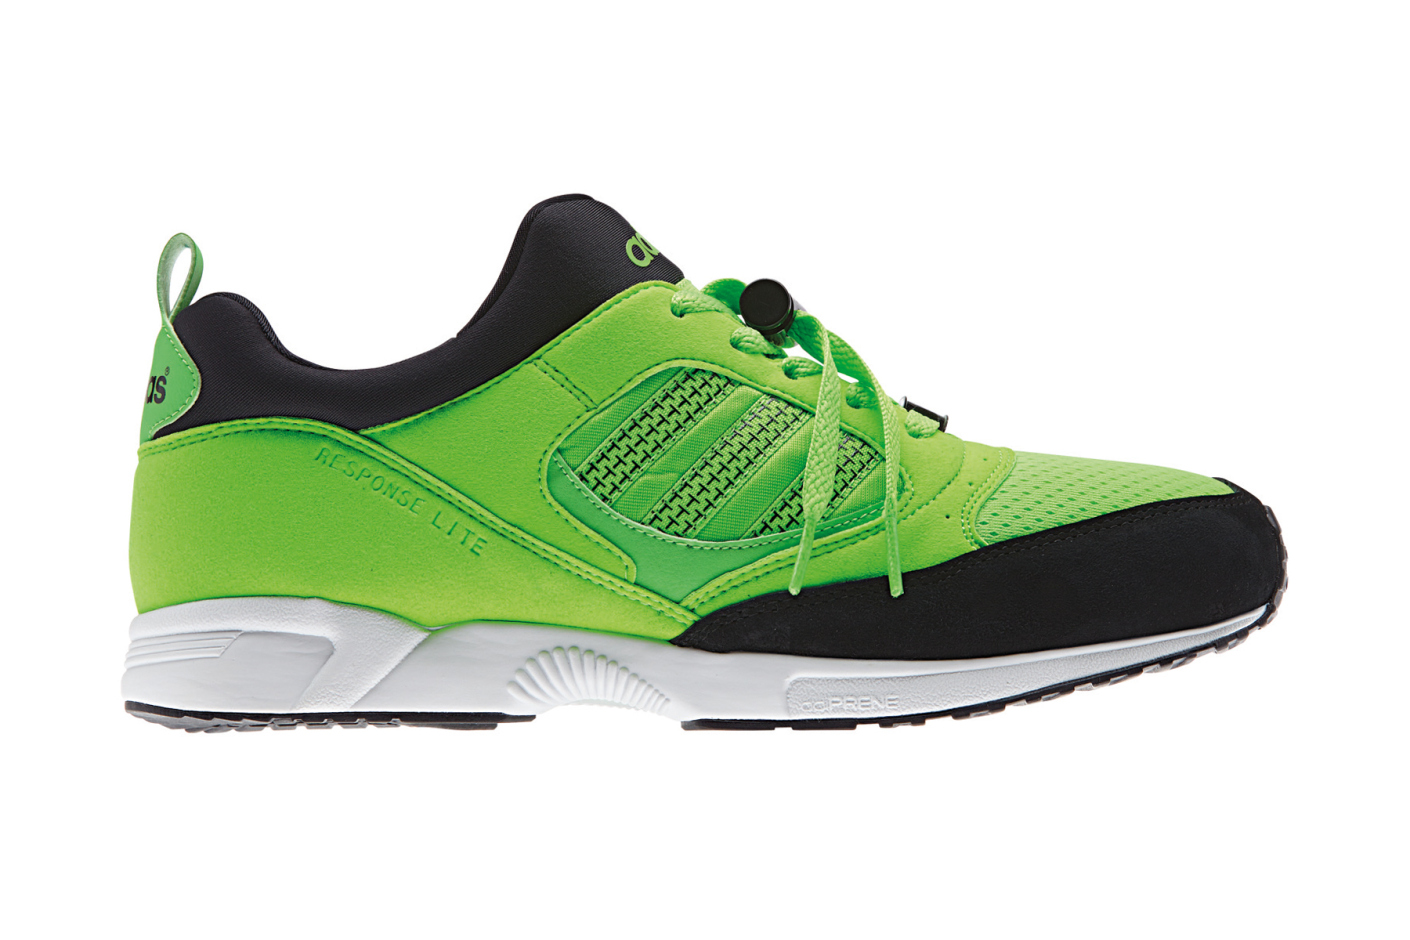 adidas-originals-2014-fall-winter-torsion-response-lite-3